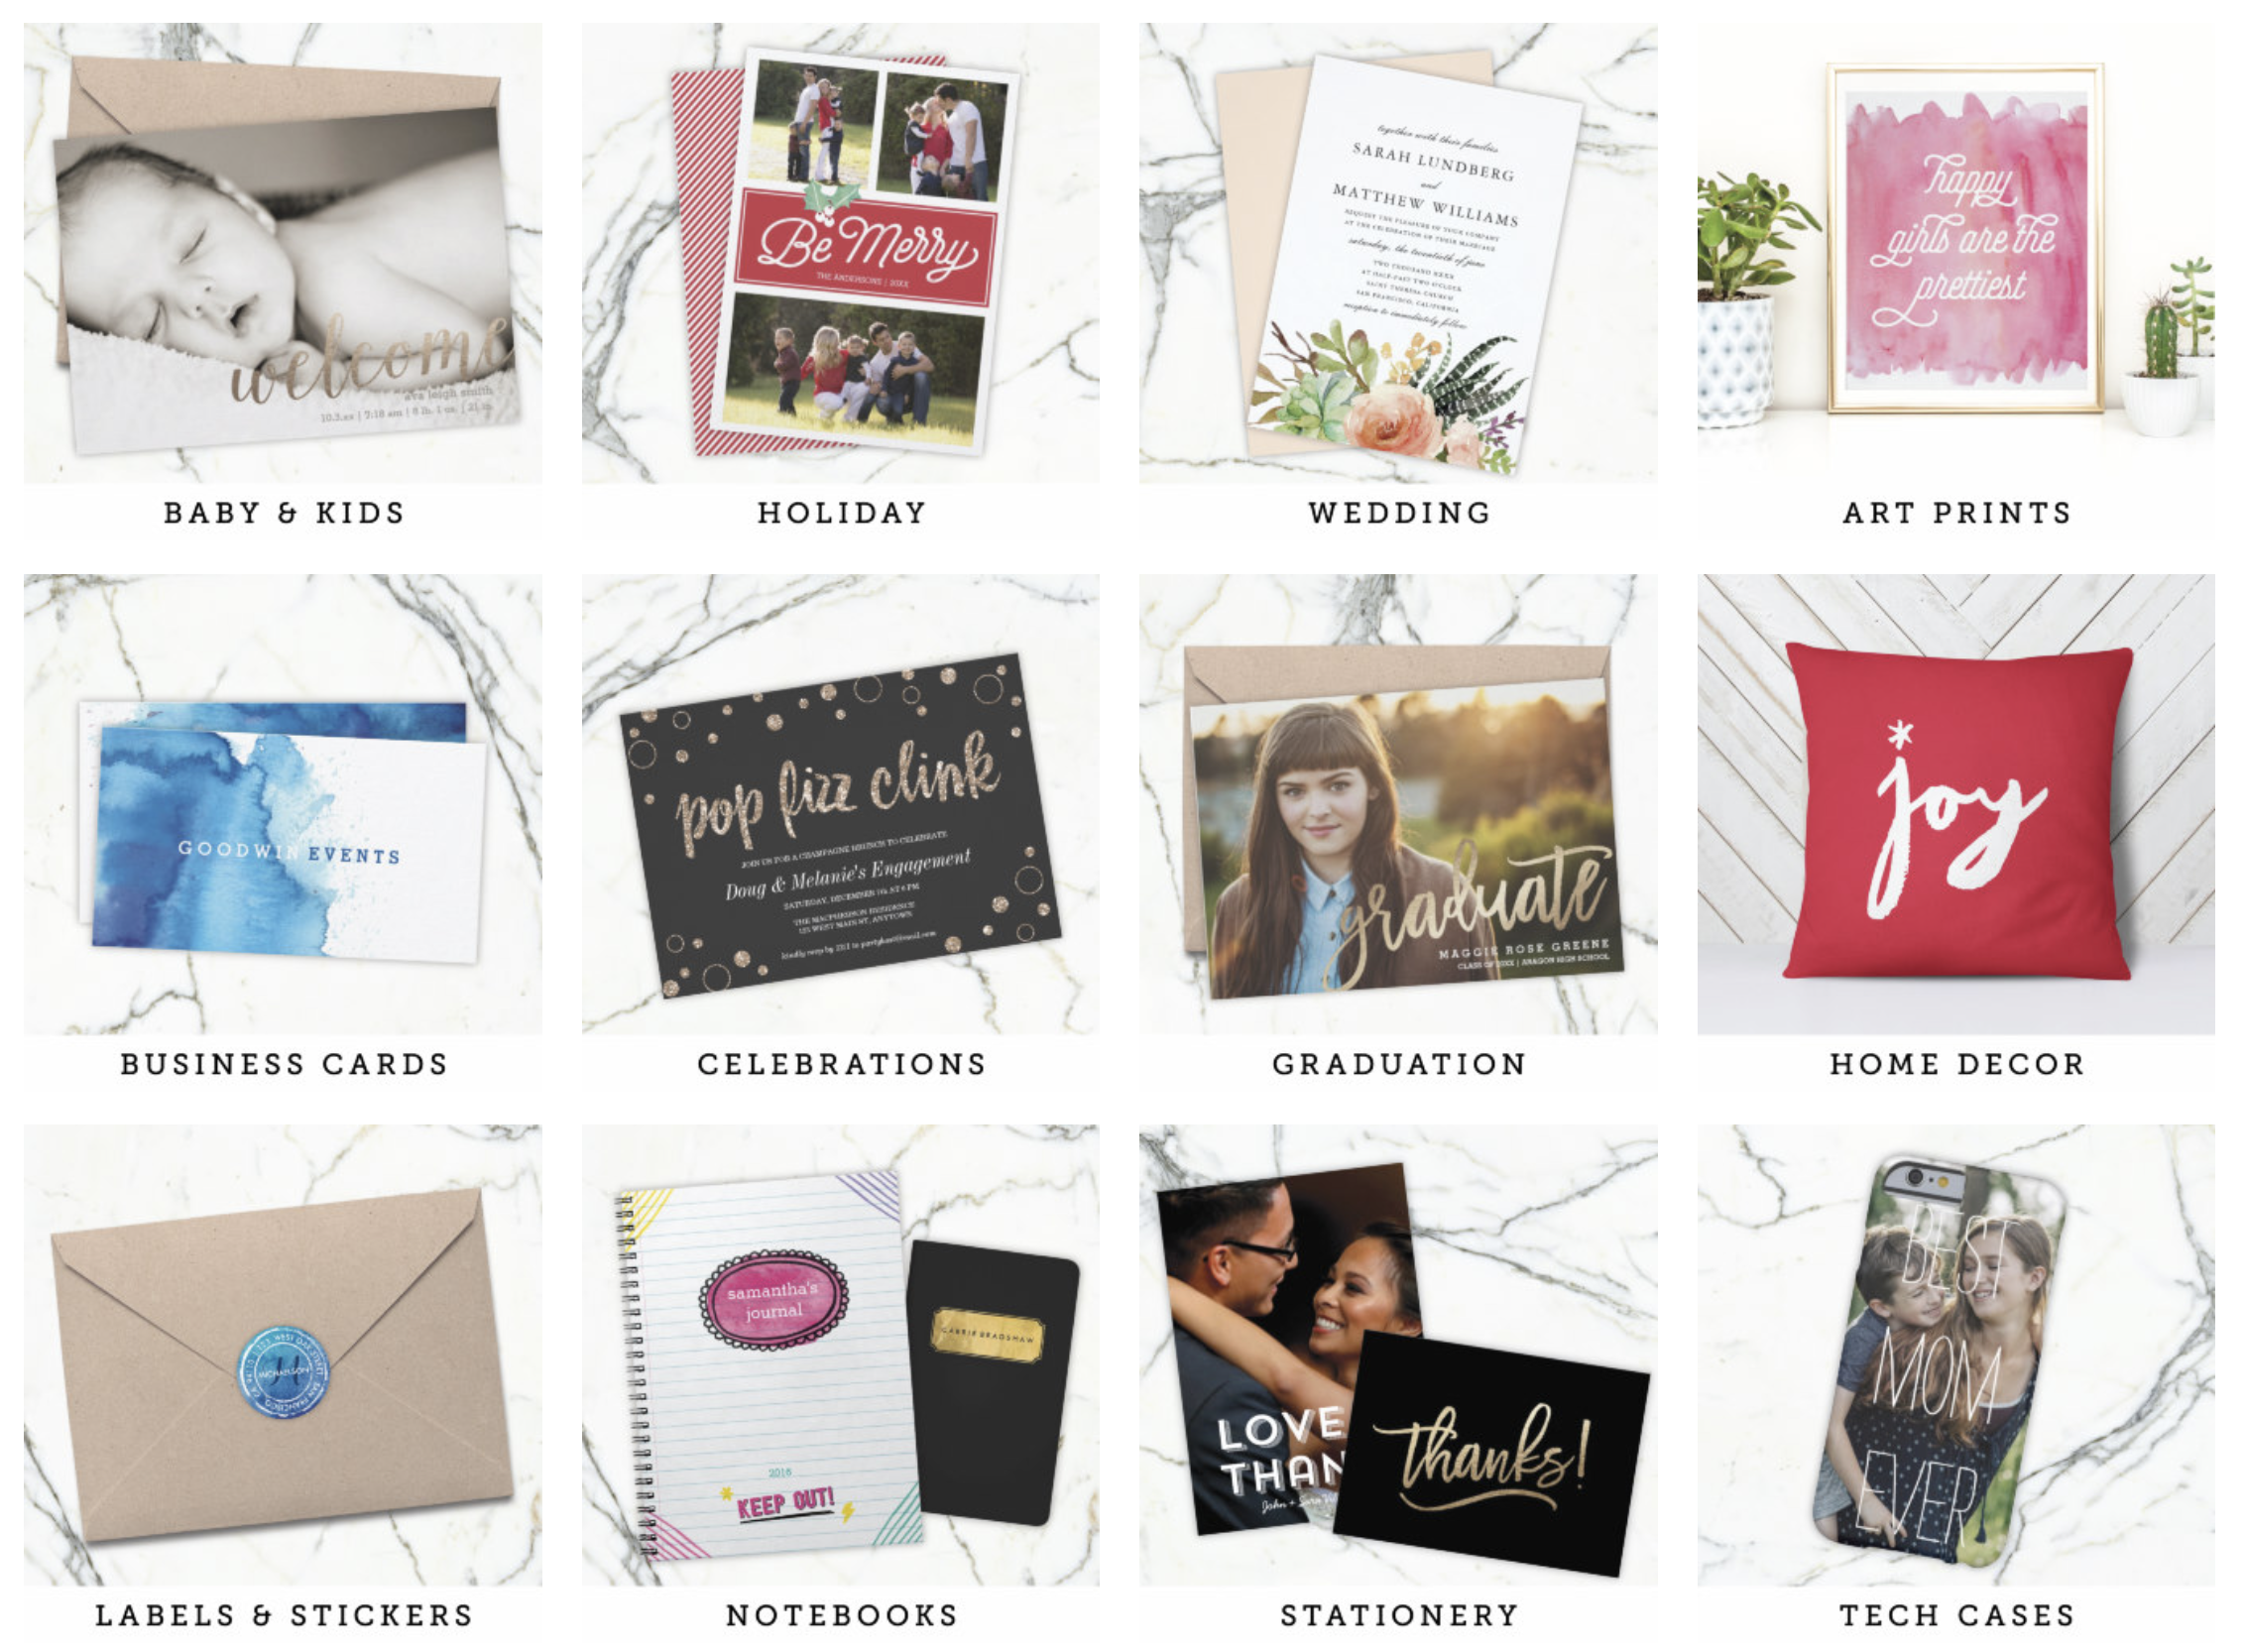 There are hundreds of products available in my Zazzle store… Just click the image above to start shopping!